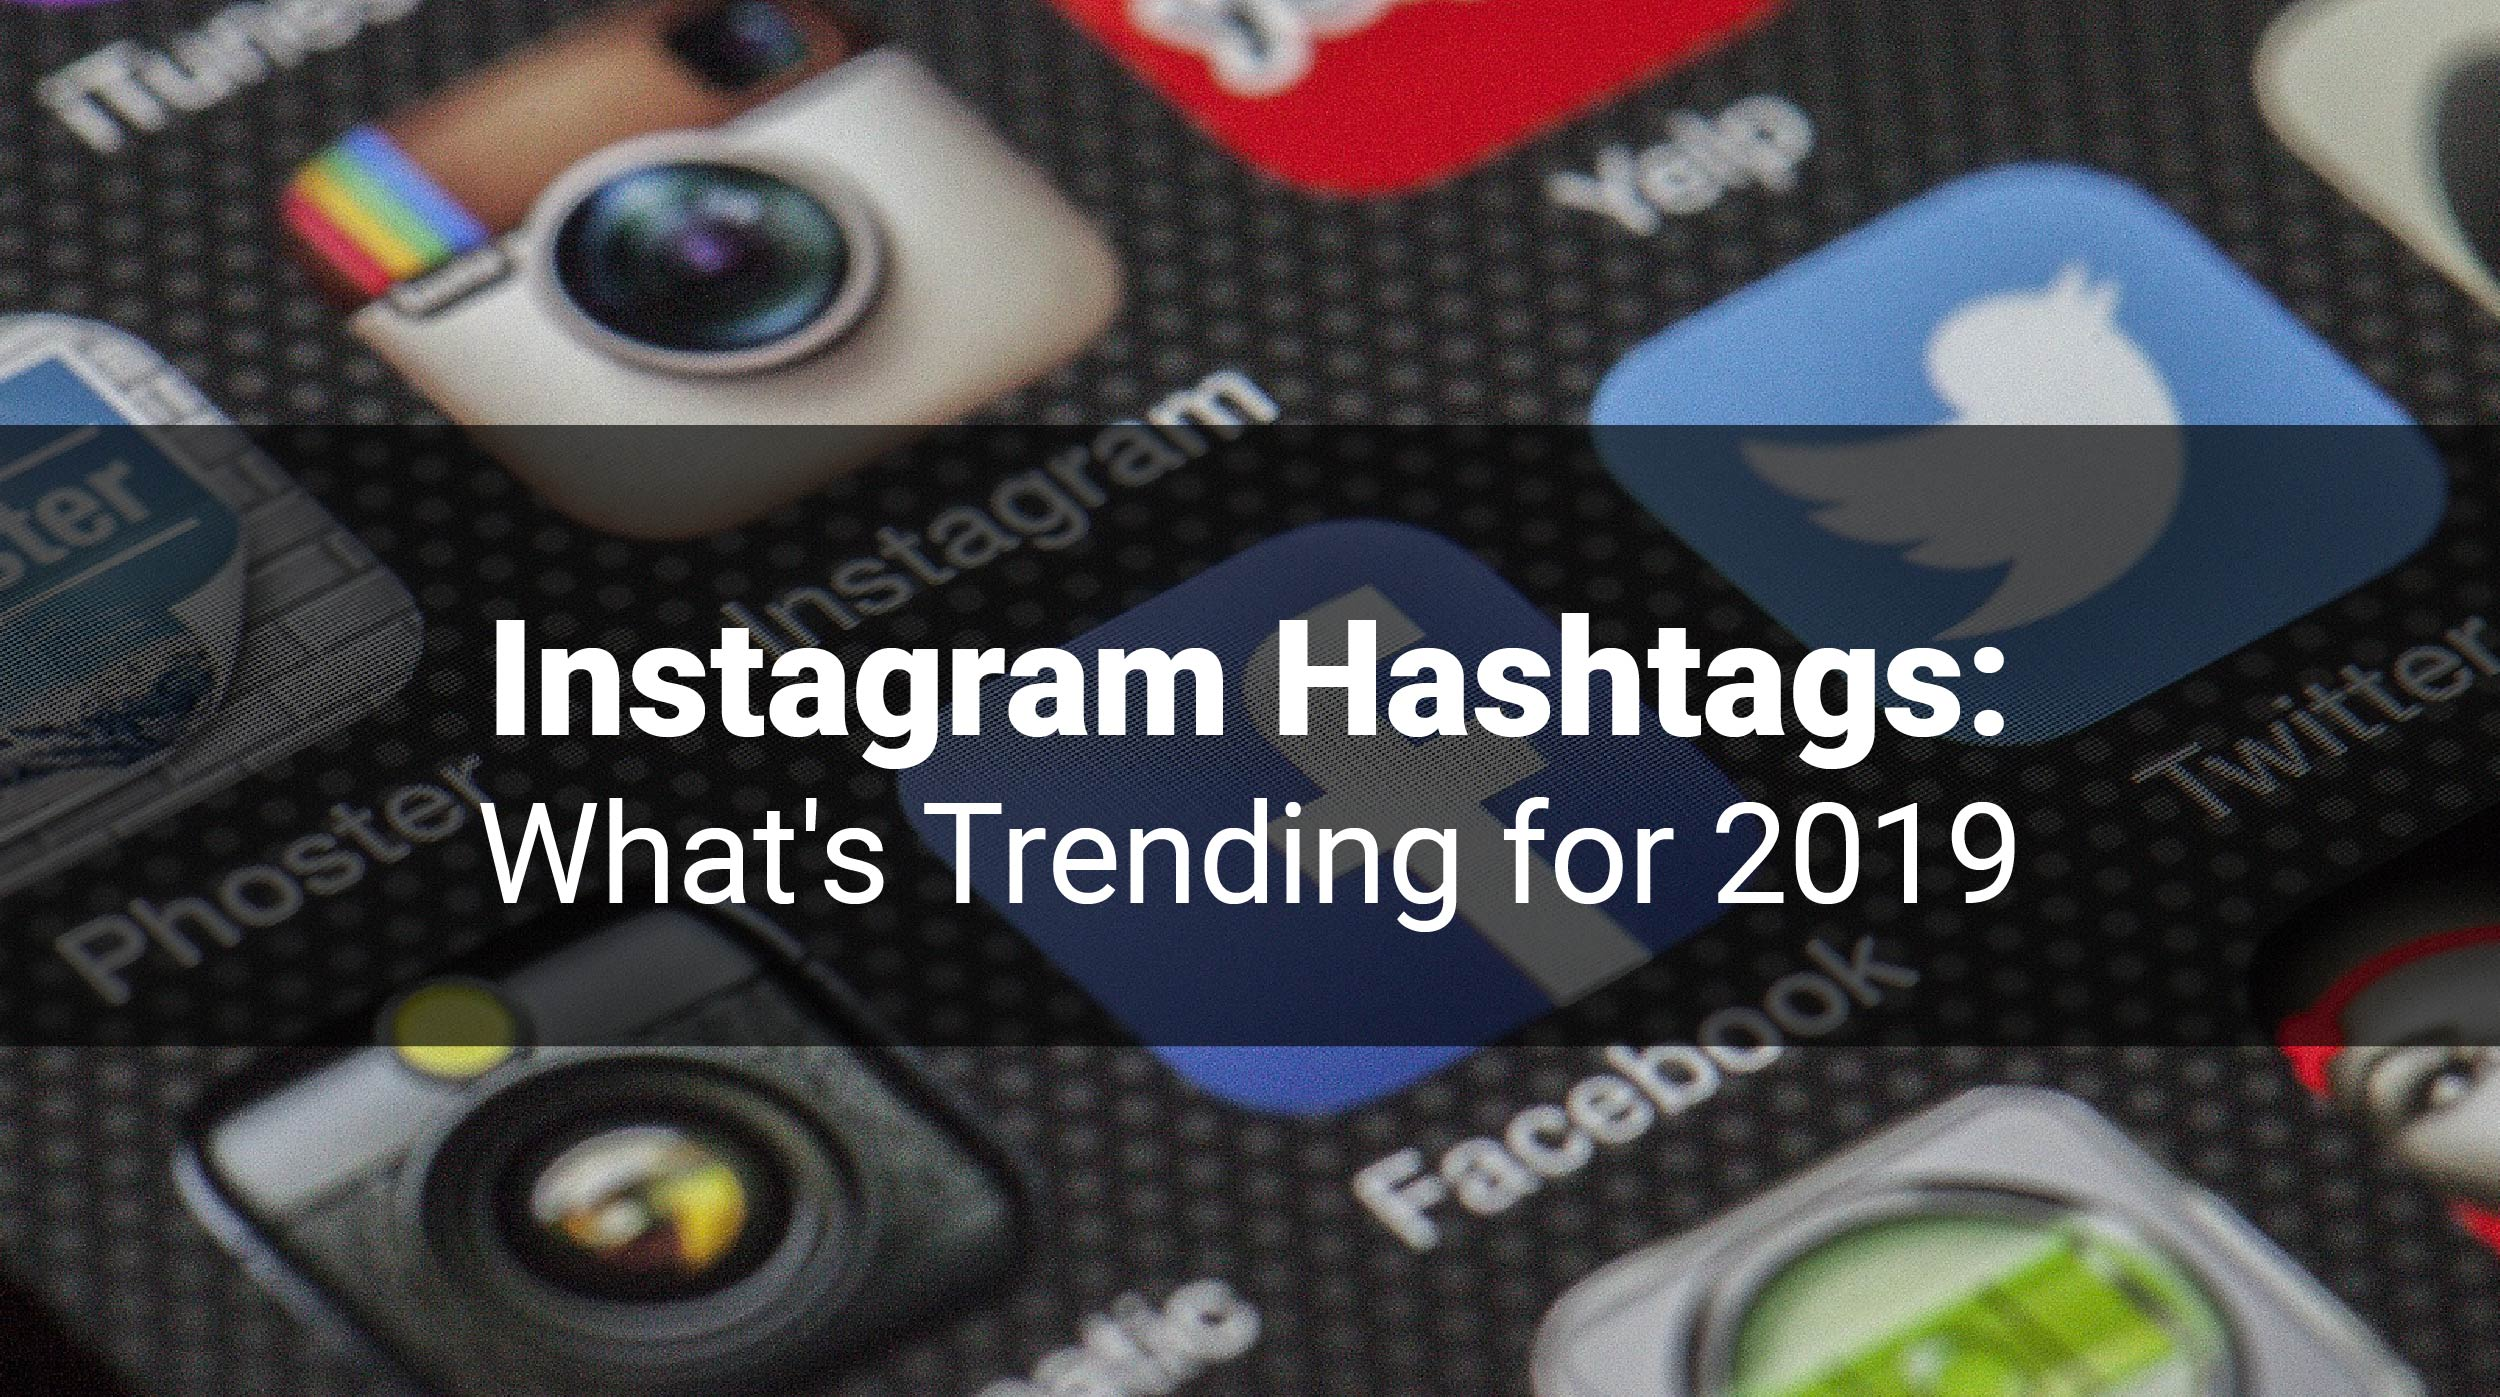 Instagram Hashtags: What's Trending for 2019